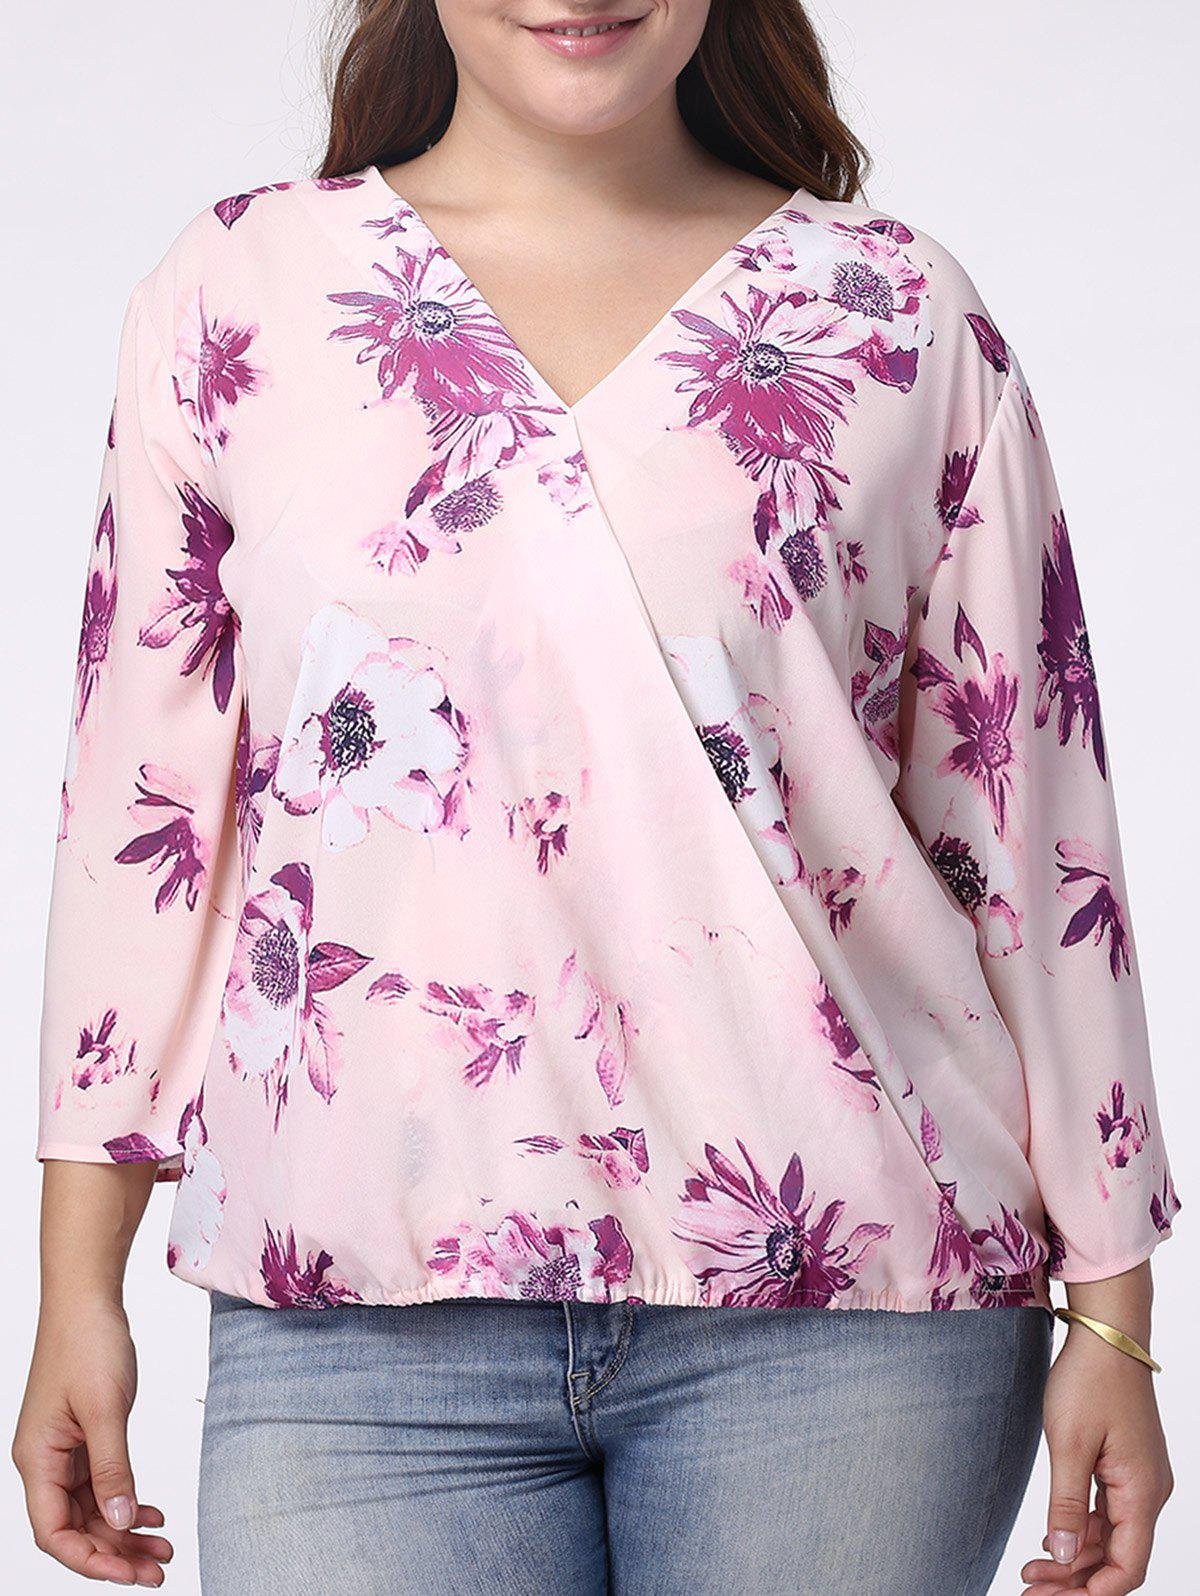 Sweet V-Neck 3/4 Sleeve Floral Print Wrapped Blouse For Women - LIGHT PURPLE 5XL